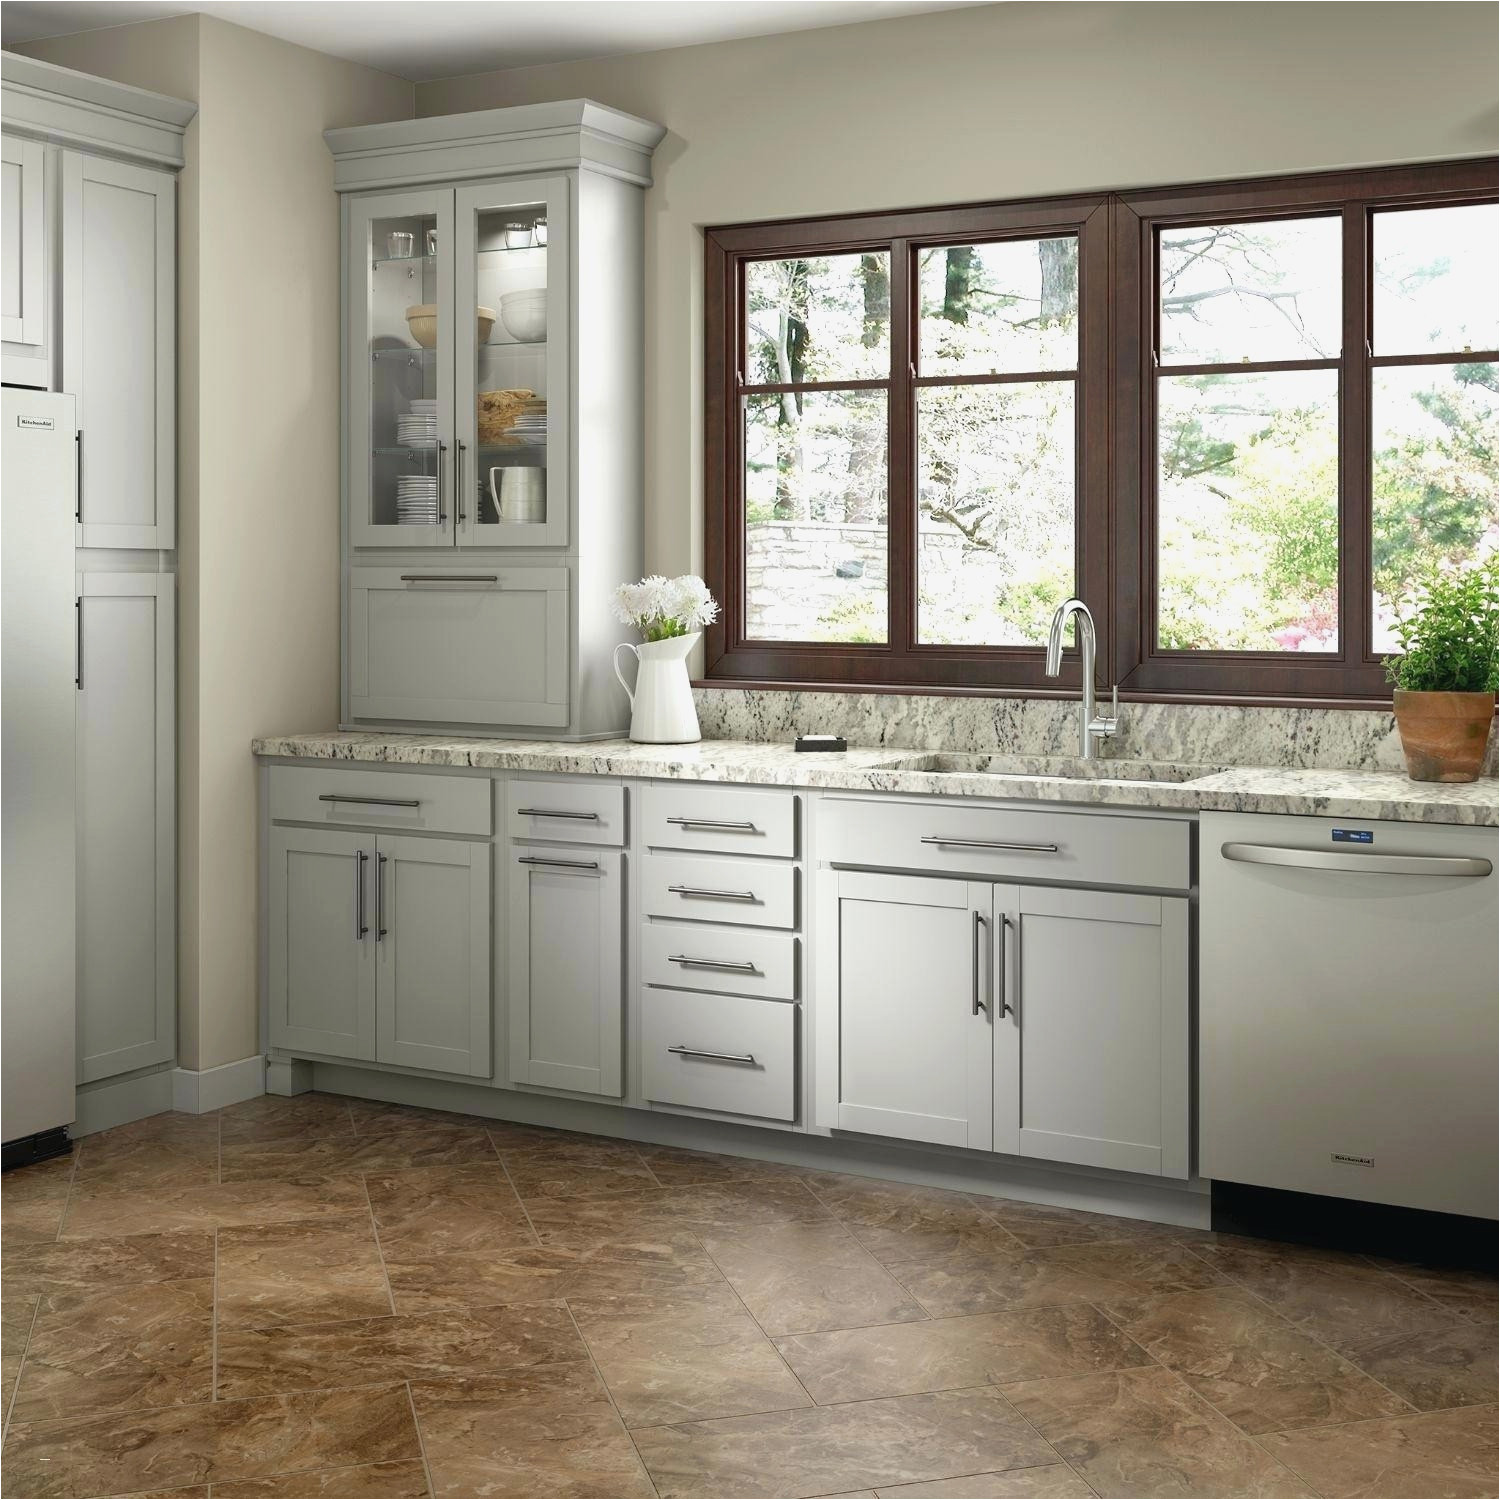 Kitchen Cabinets Replacement: Hampton Bay Cabinets Replacement Doors